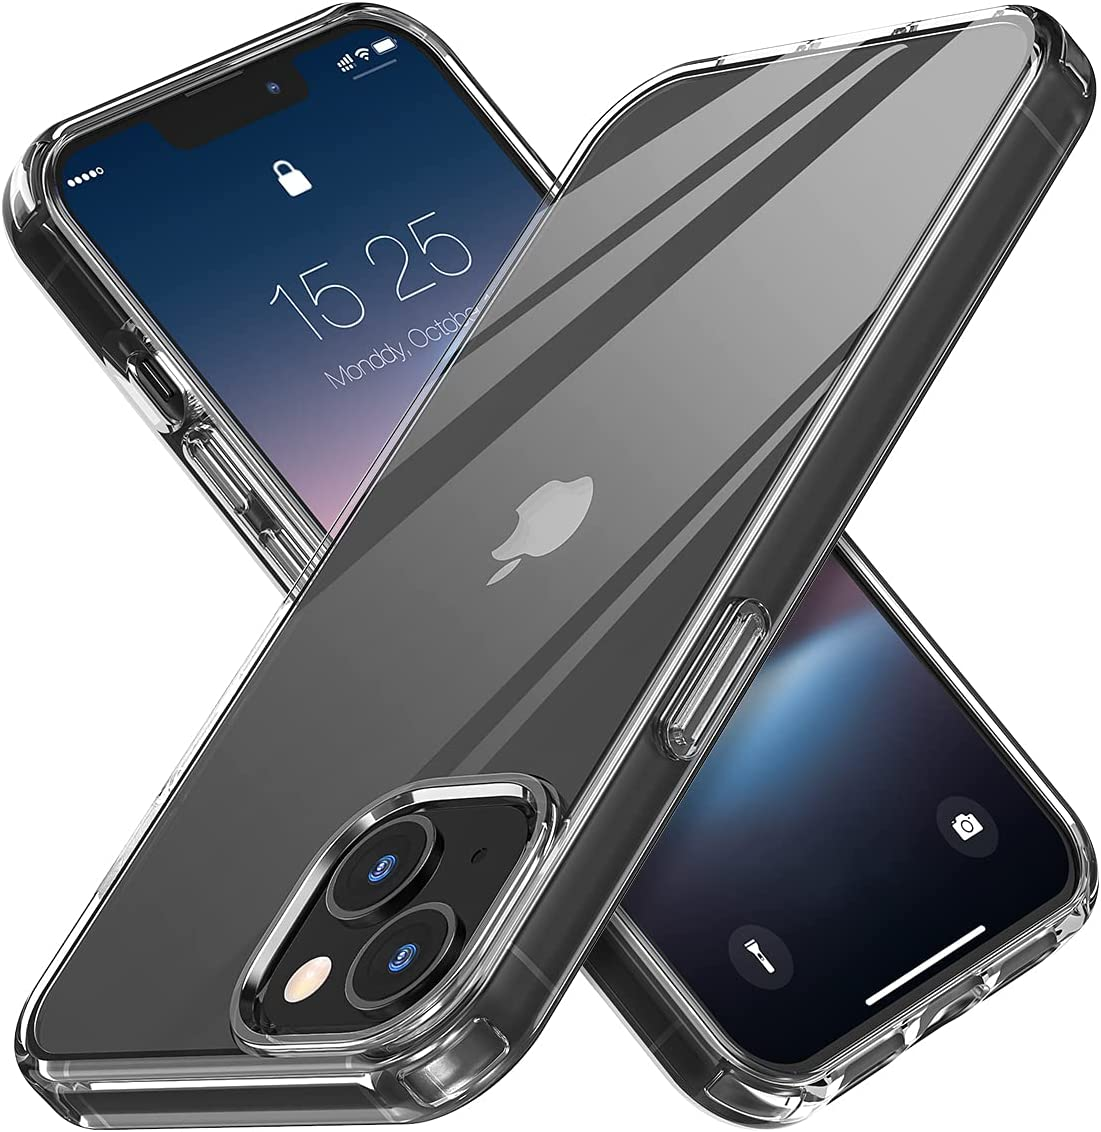 MATEPROX Compatible with iPhone 13 Mini case Clear Crystal Transparent Non-Yellowing Thin Shockproof Phone Cover for iPhone 13 Mini 5.4